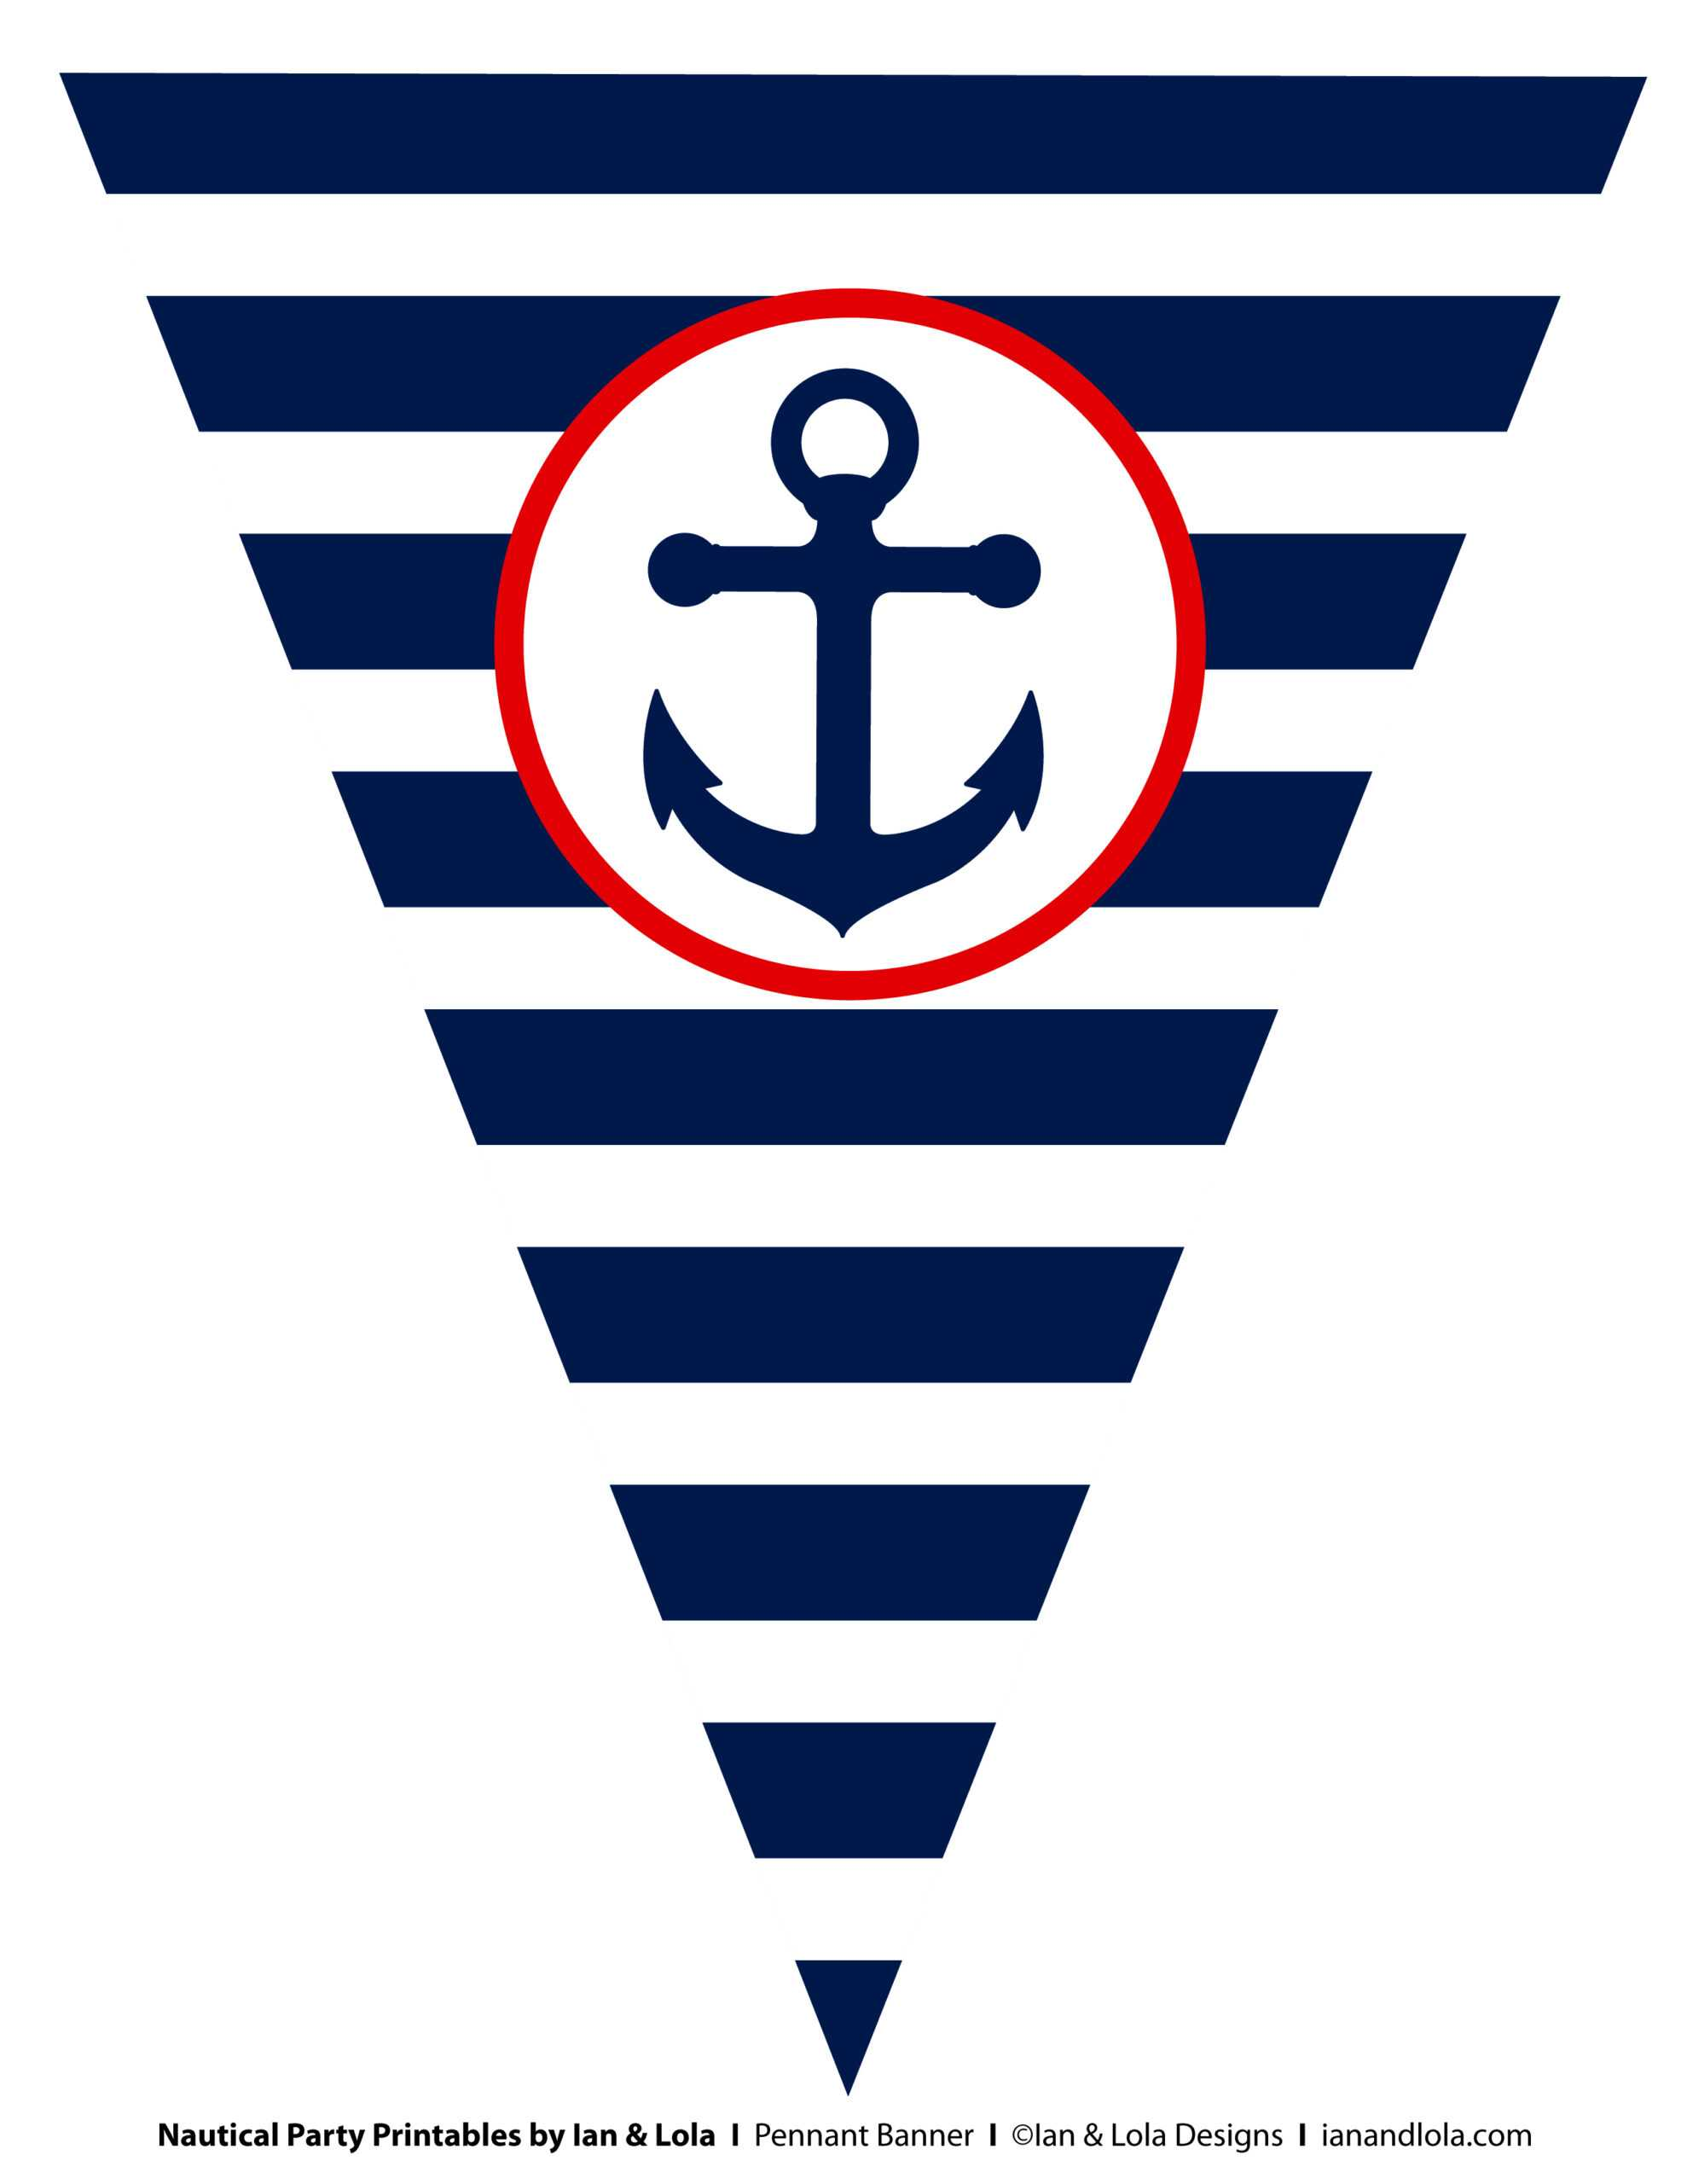 Free Nautical Party Printables From Ian & Lola Designs Regarding Nautical Banner Template